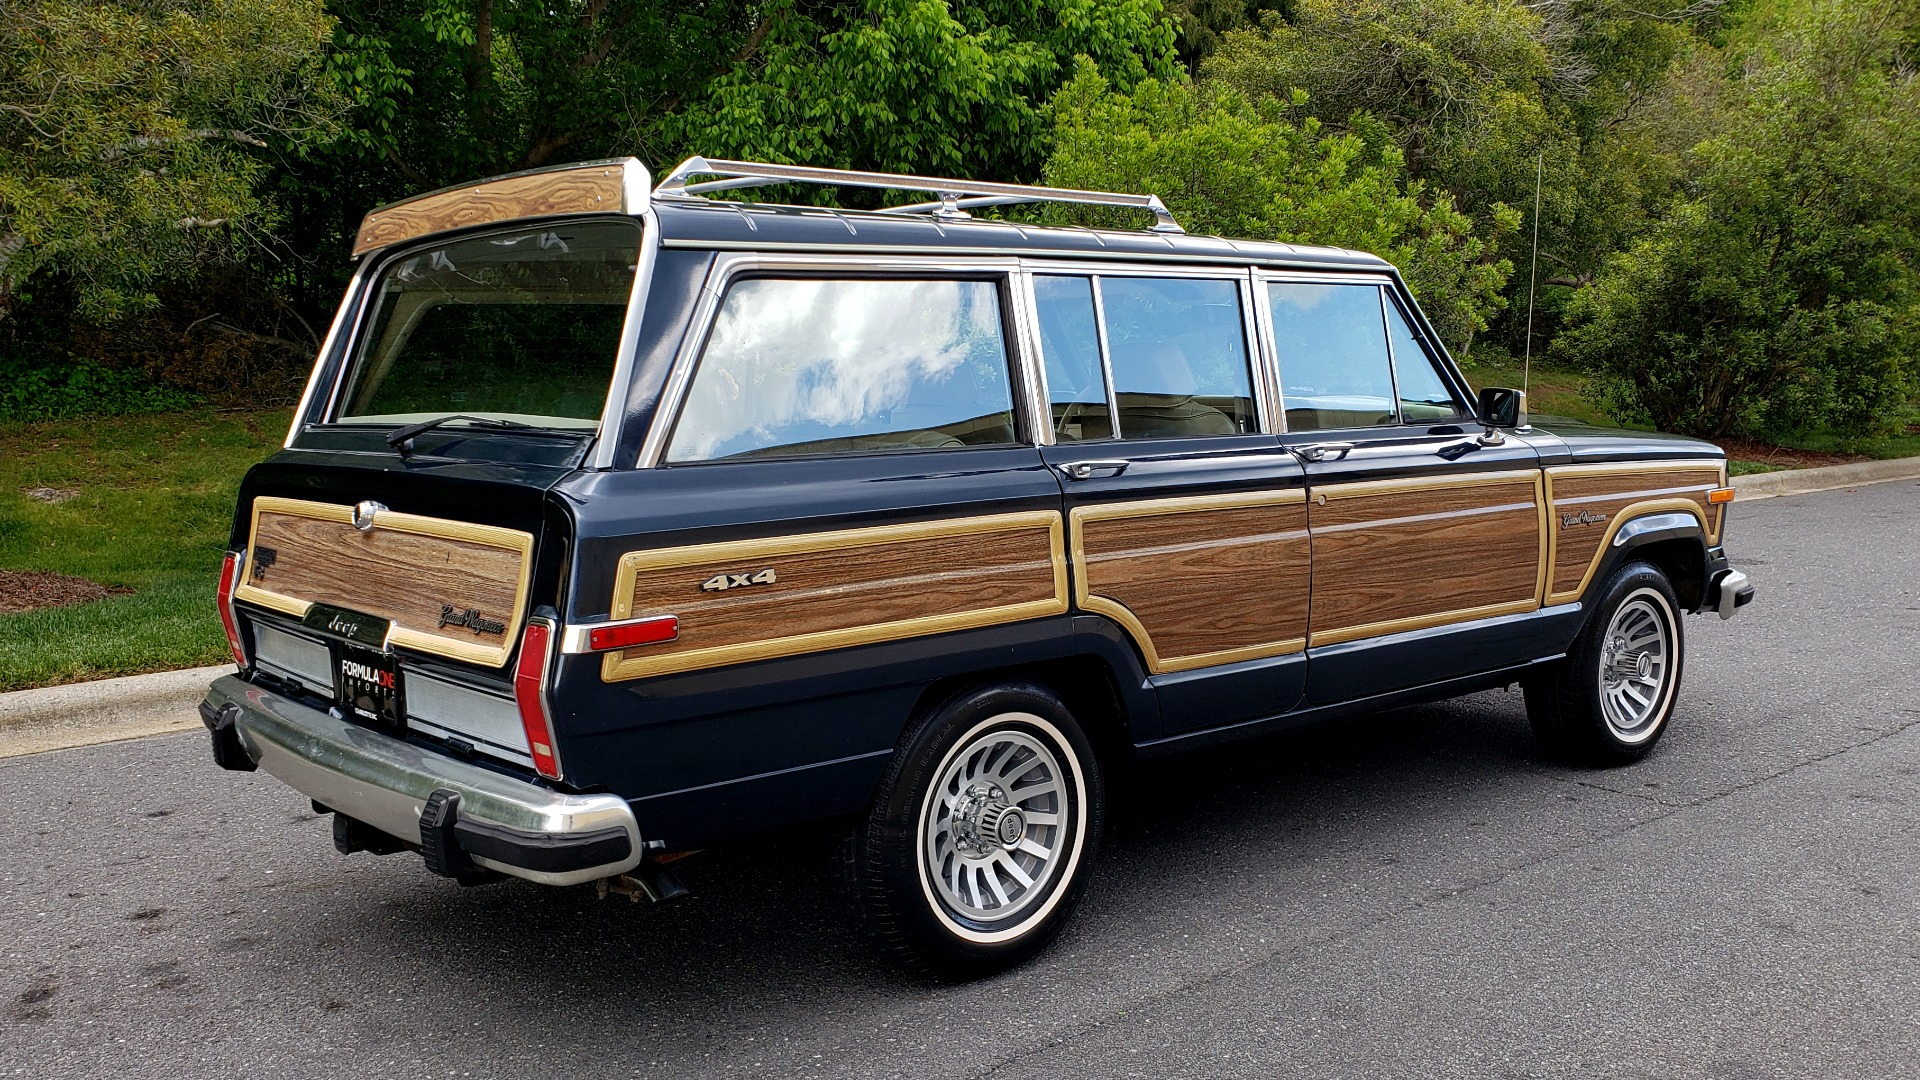 Used 1989 Jeep GRAND WAGONEER 4x4 / 5.9L V8 / 3-SPEED AUTO / PIONEER STEREO for sale Sold at Formula Imports in Charlotte NC 28227 6